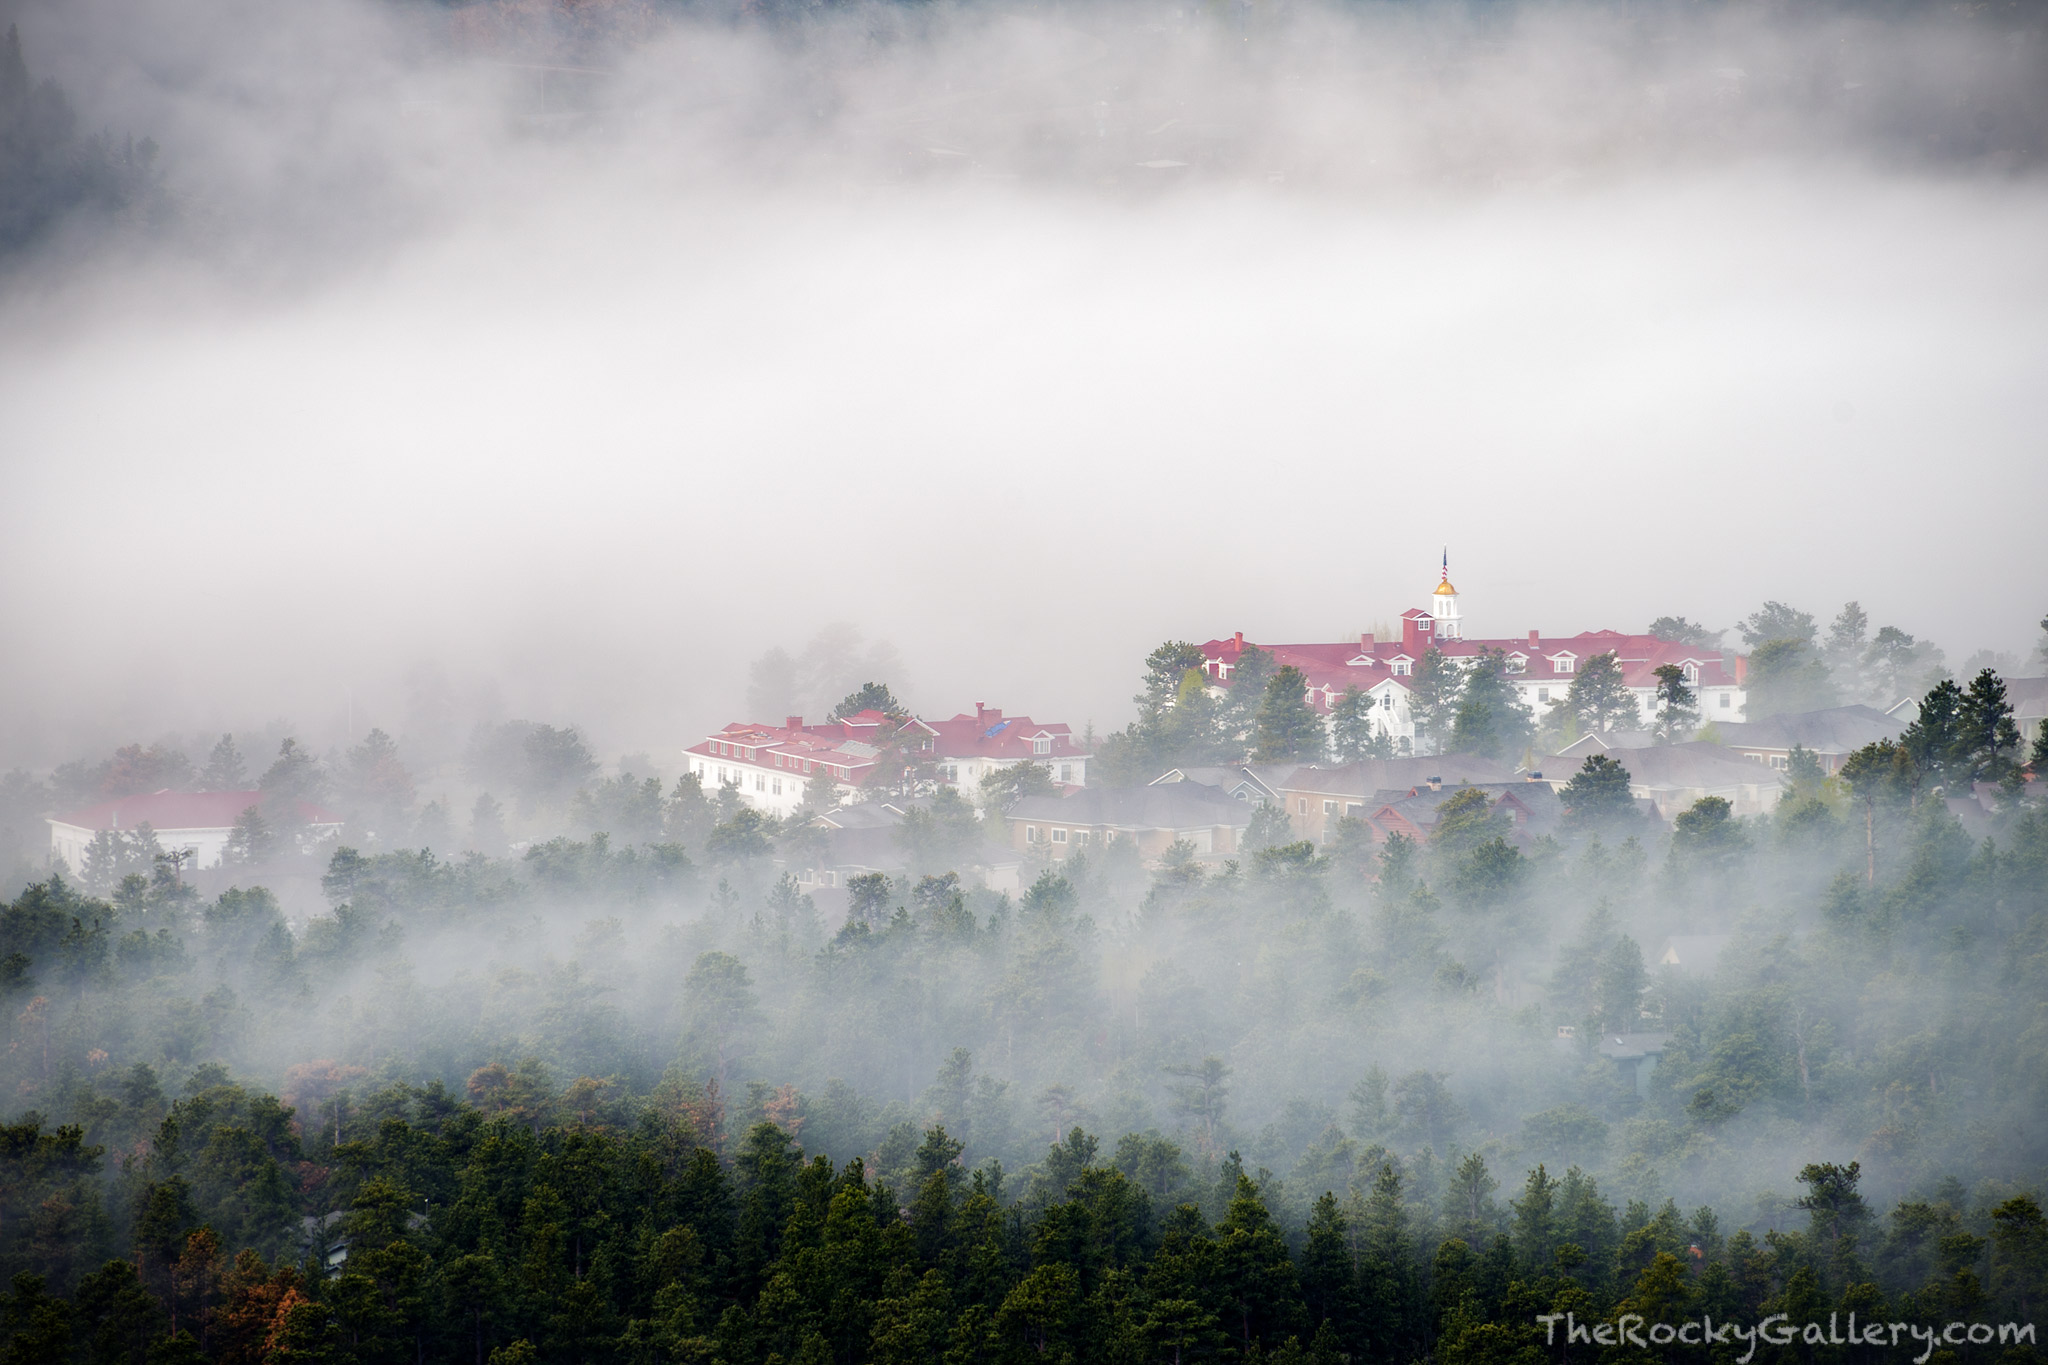 Stanley Hotel,FO Stanley,The Shining,Stephen King,Movie,Haunted,Mysterious,Lumpy Ridge,RMNP,Colorado,Rocky Mountain National Park,Fog,Estes Park,Hotel,May, photo